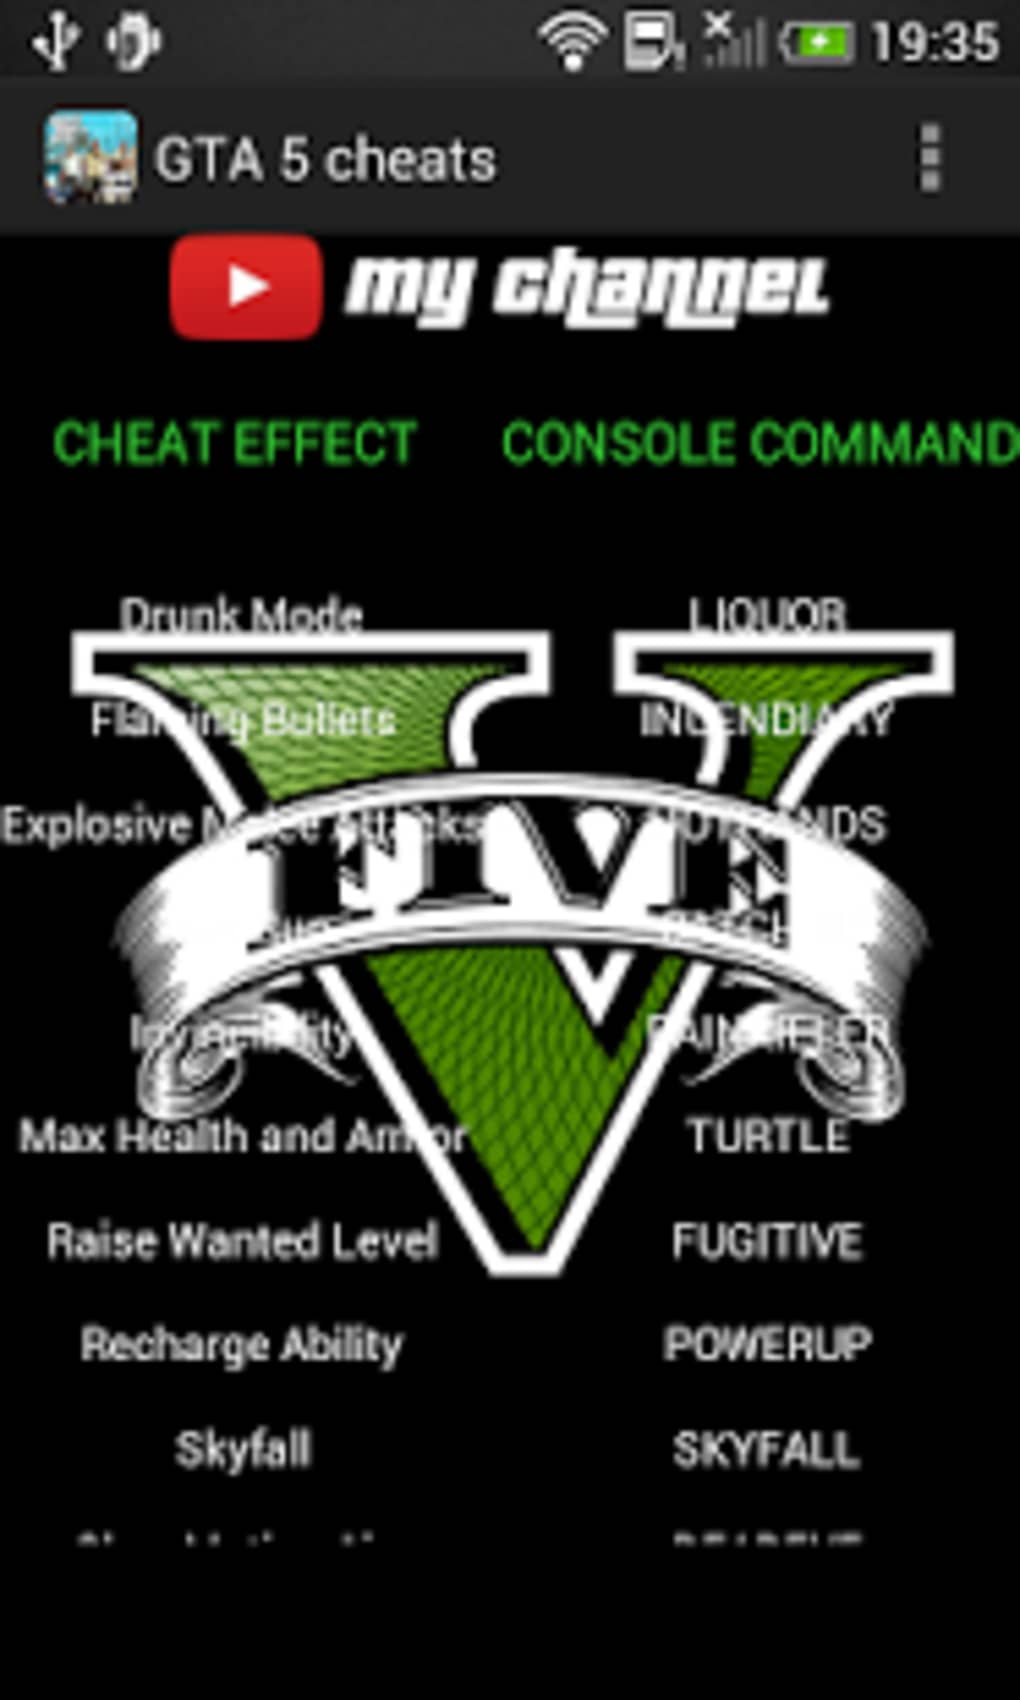 GTA 5 cheats for PC for Android - Download